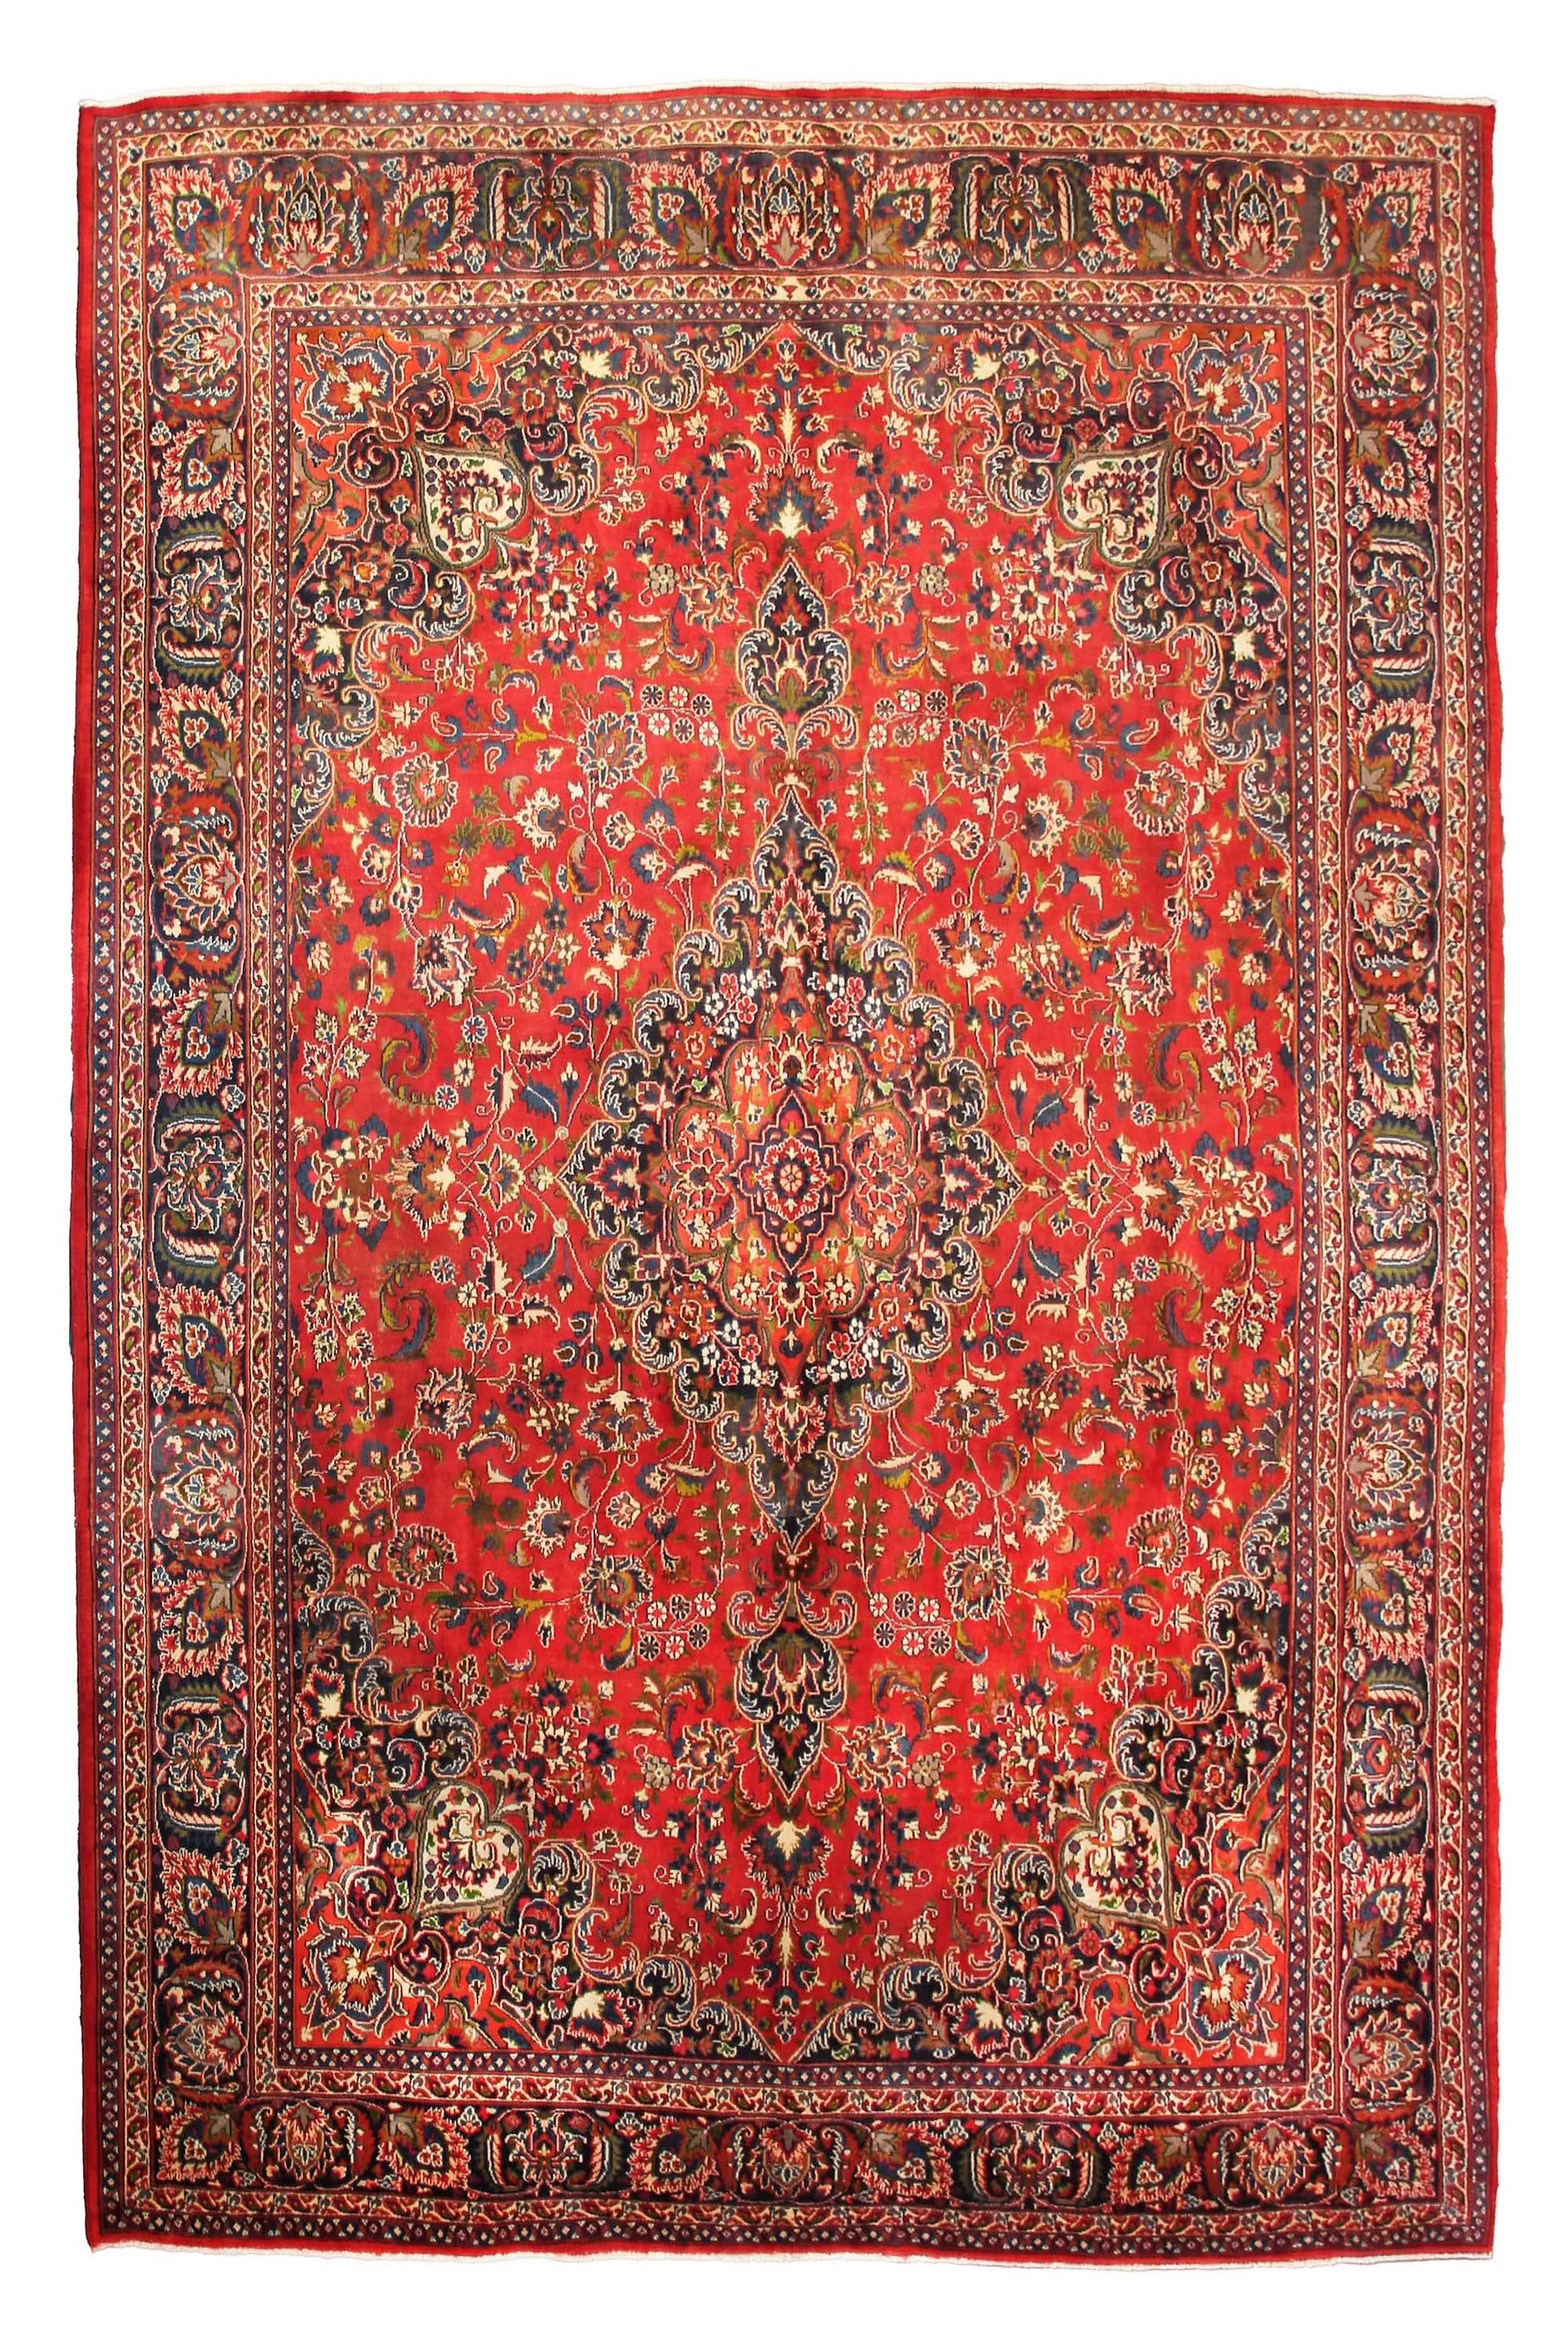 Hand Knotted Vintage Mashad Persian Rug, 304 x 385 cm